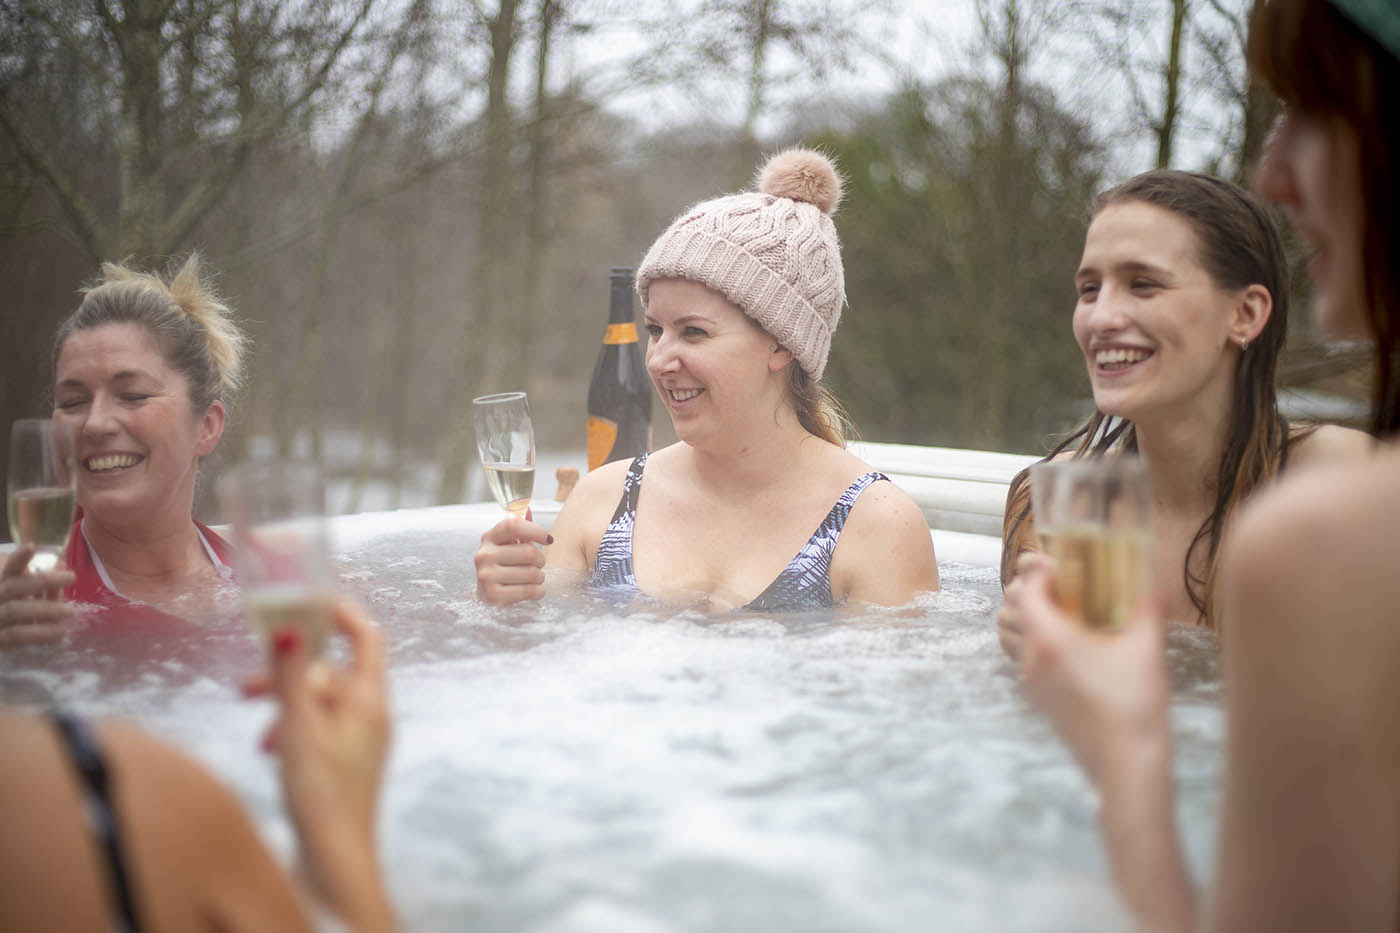 A group of female friends drink champagne in an outdoor hot tub surrounded by bare trees